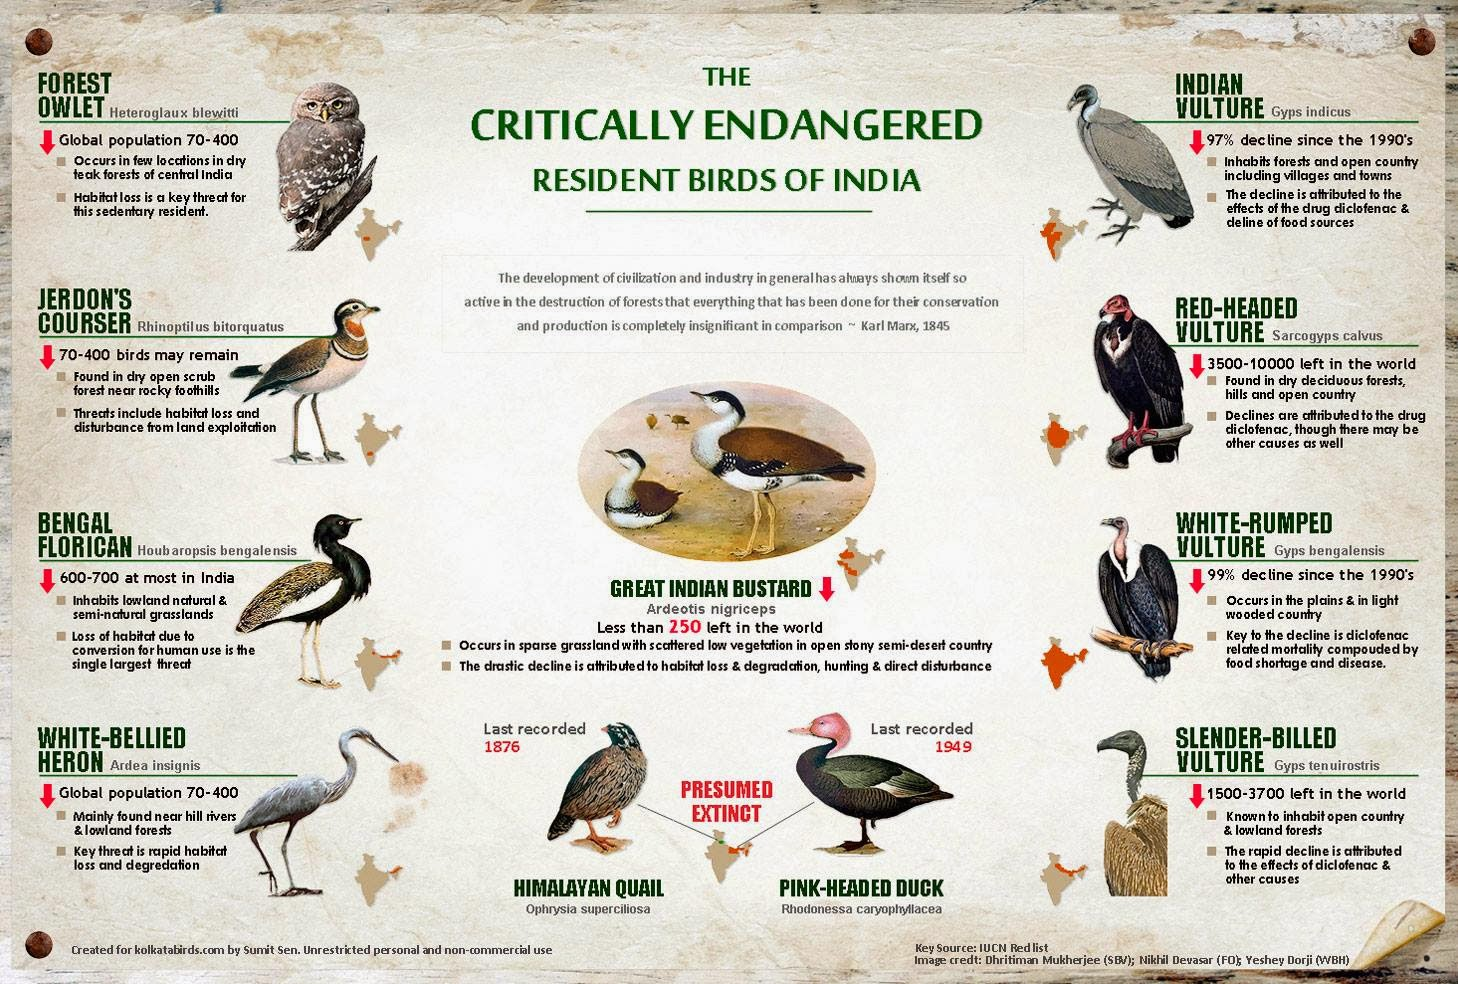 Essay on endangered birds of india